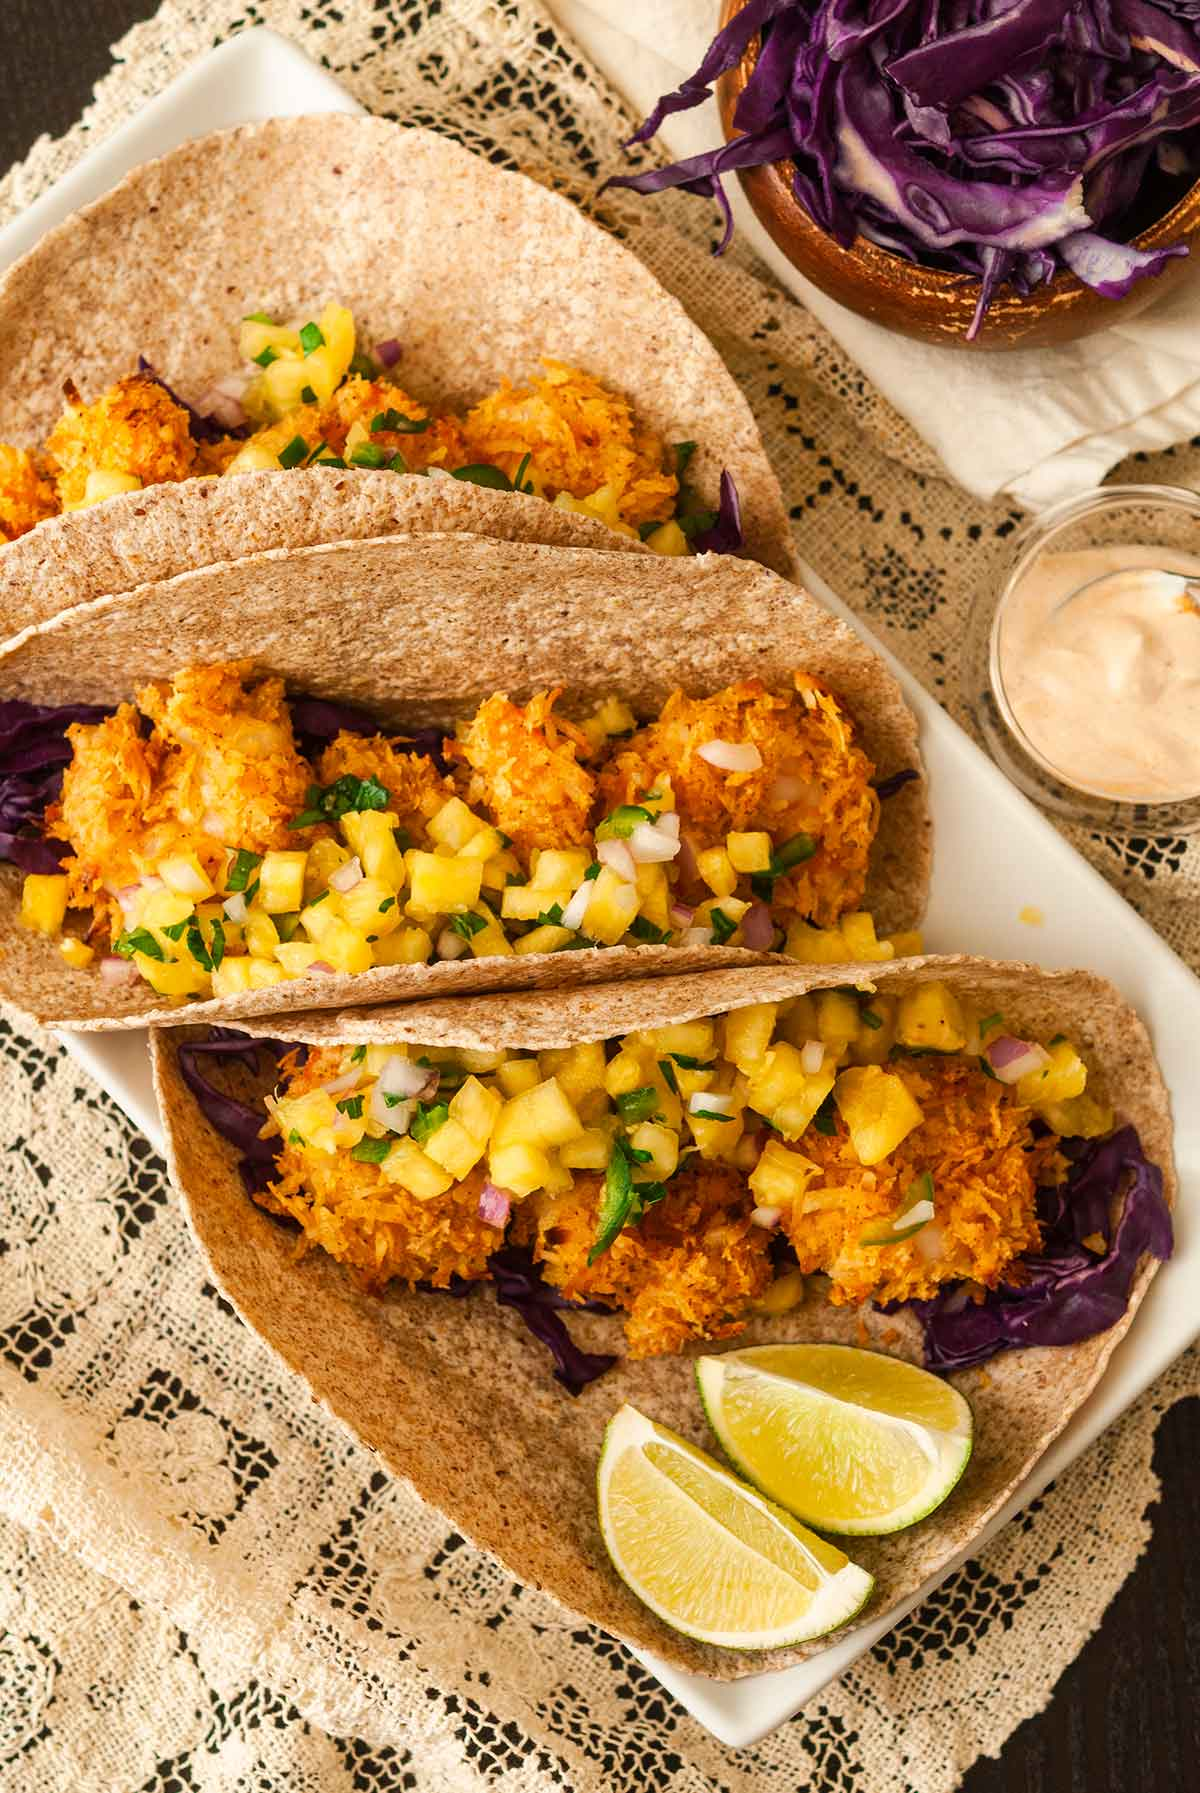 3 coconut shrimp tacos on a plate with pineapple salsa beside 2 lime slices, on a lace tablecloth.